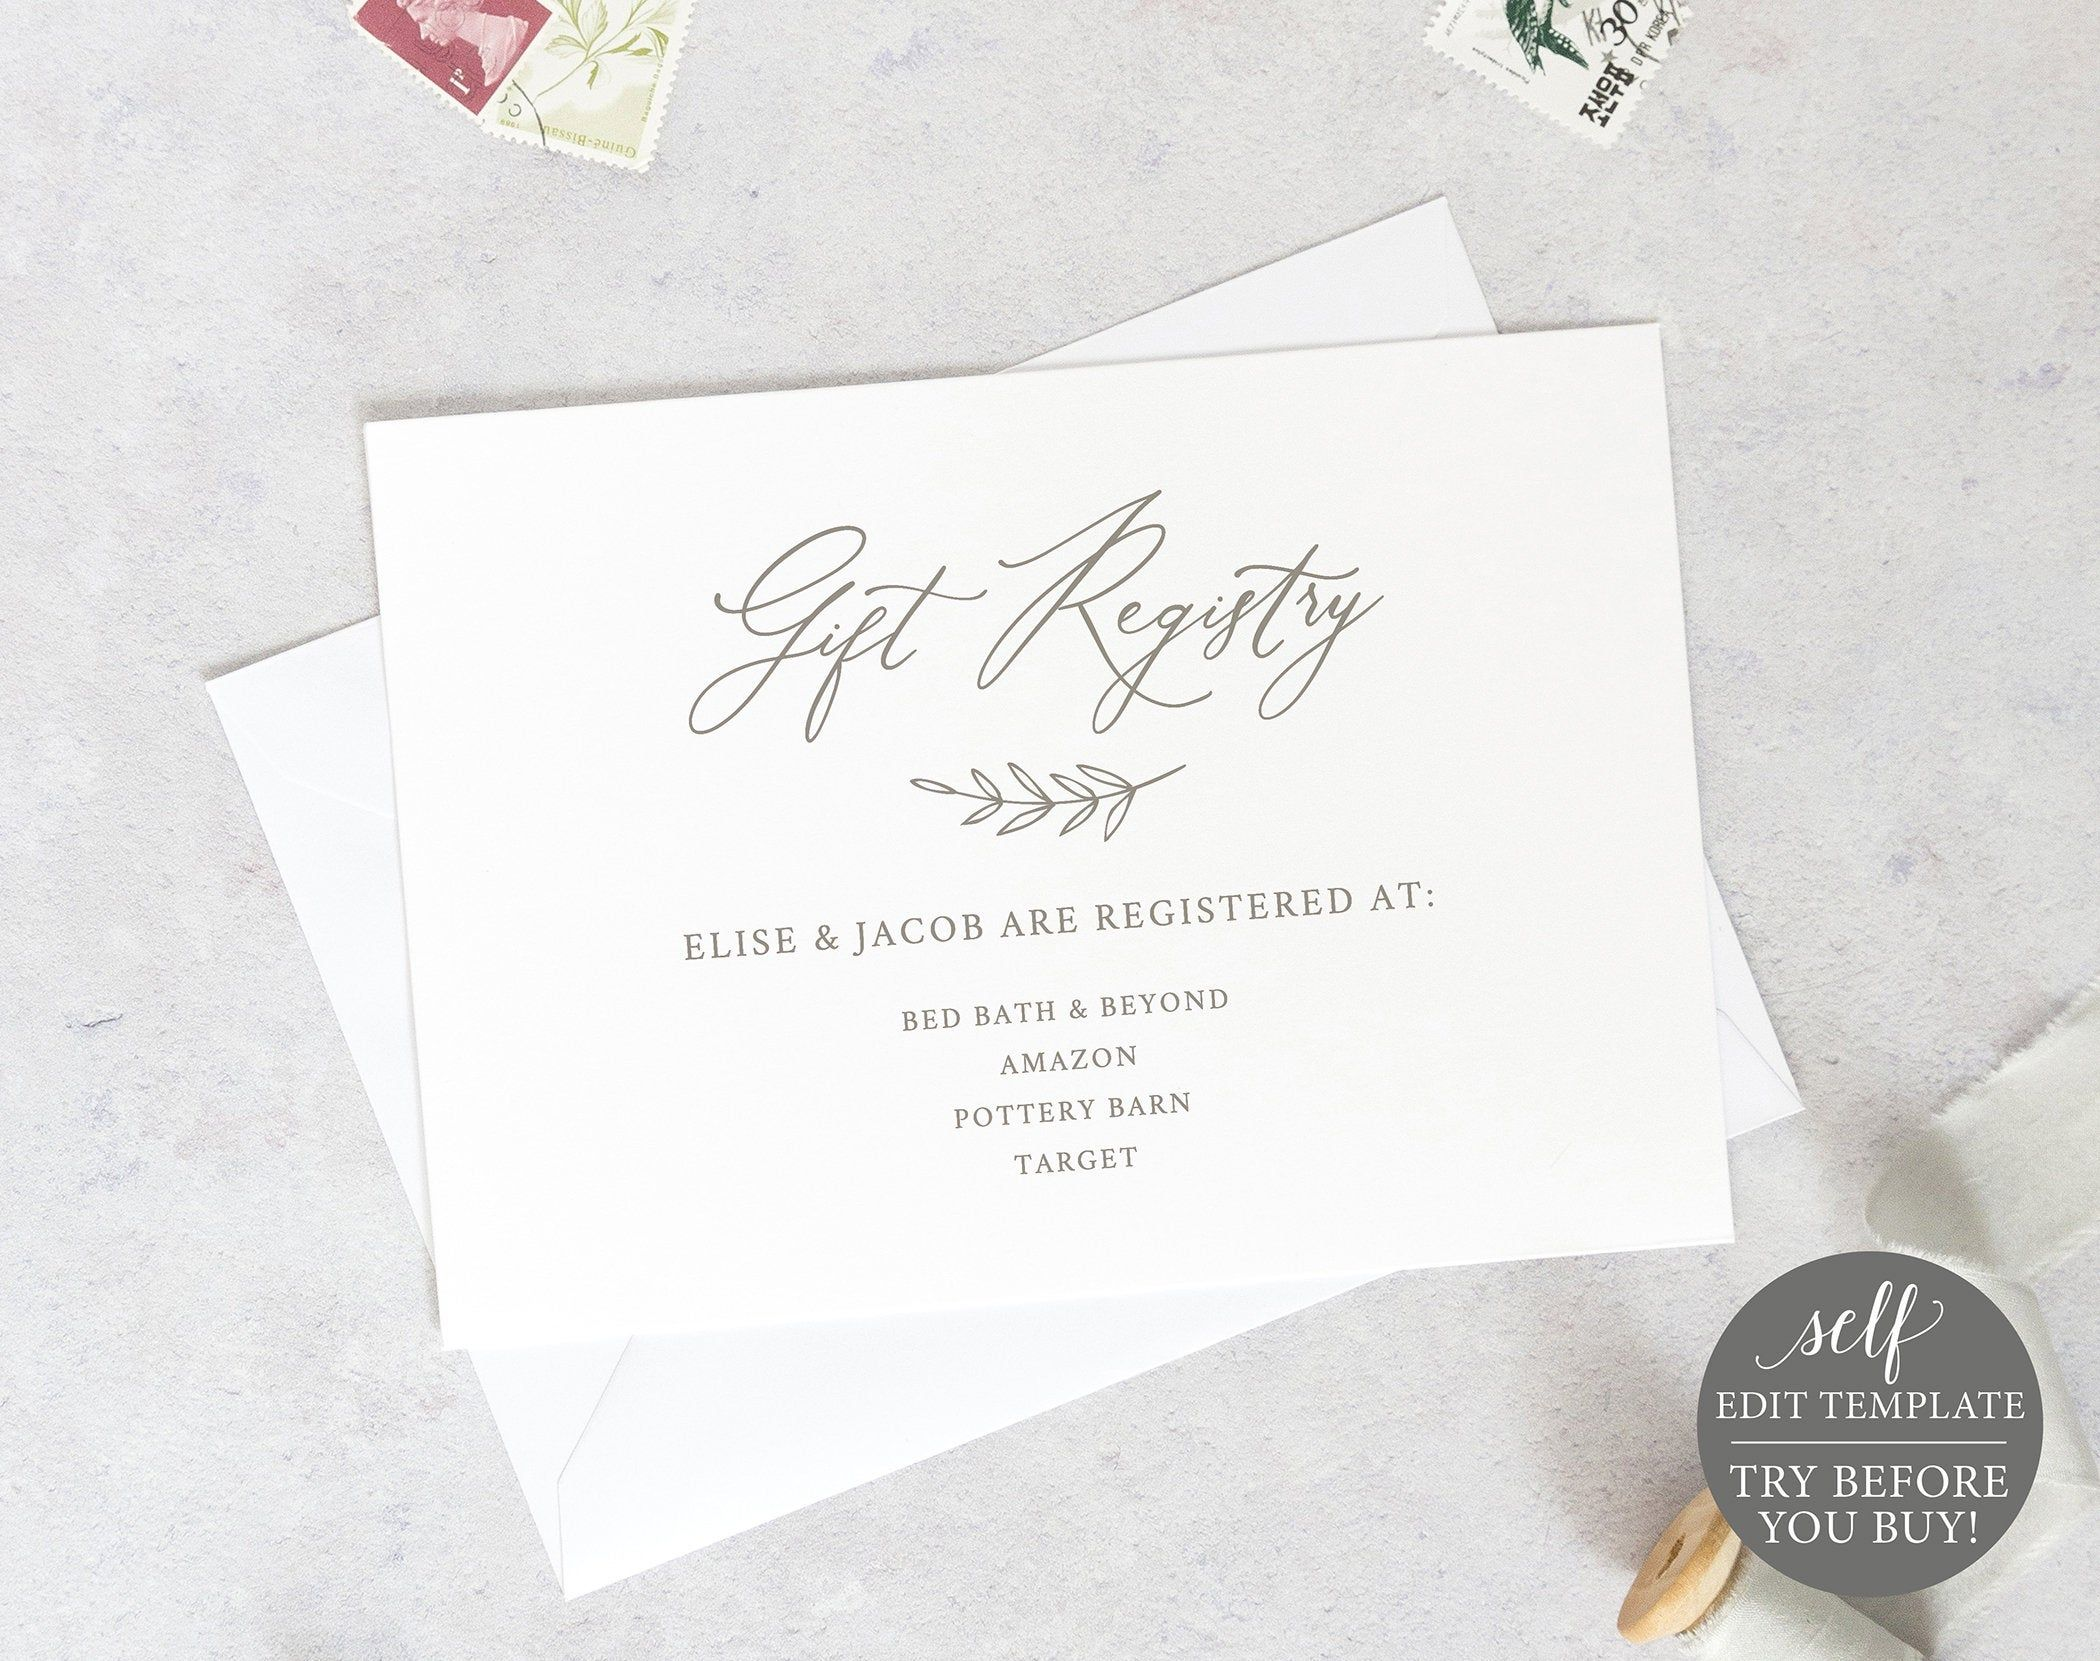 Gift Registry Card Template 6x4 Editable Instant Download Etsy Wedding Invitations Printable Templates Gift Registry Cards Card Template